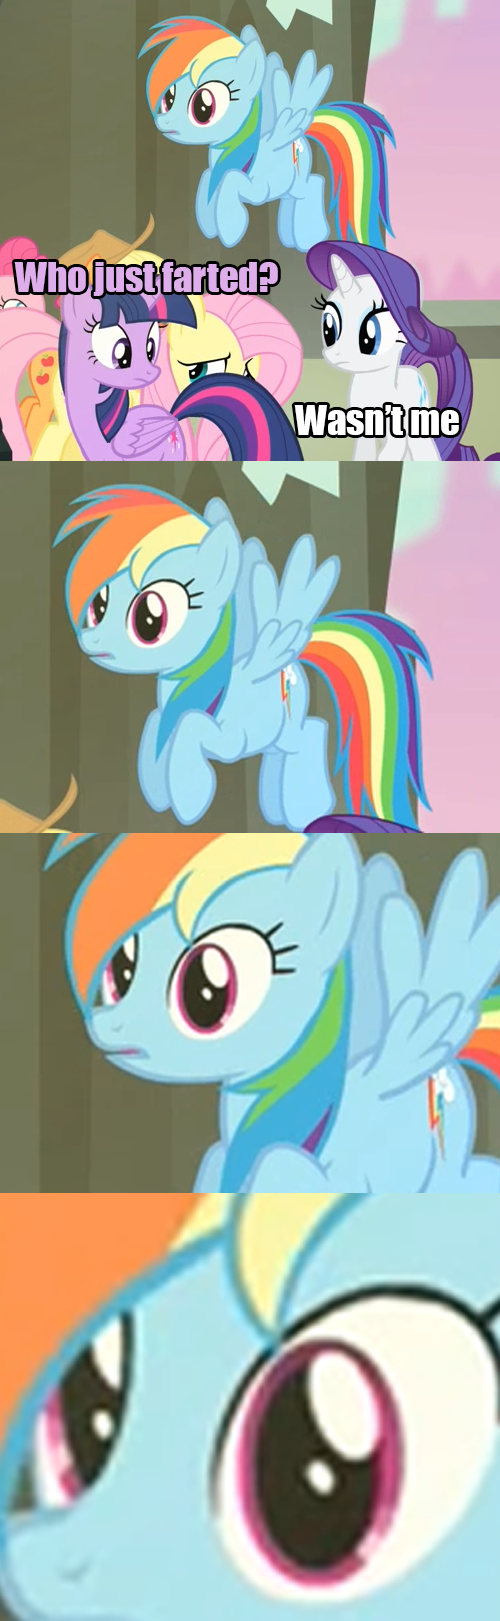 farts dat face MLP rainbow dash - 8145641216